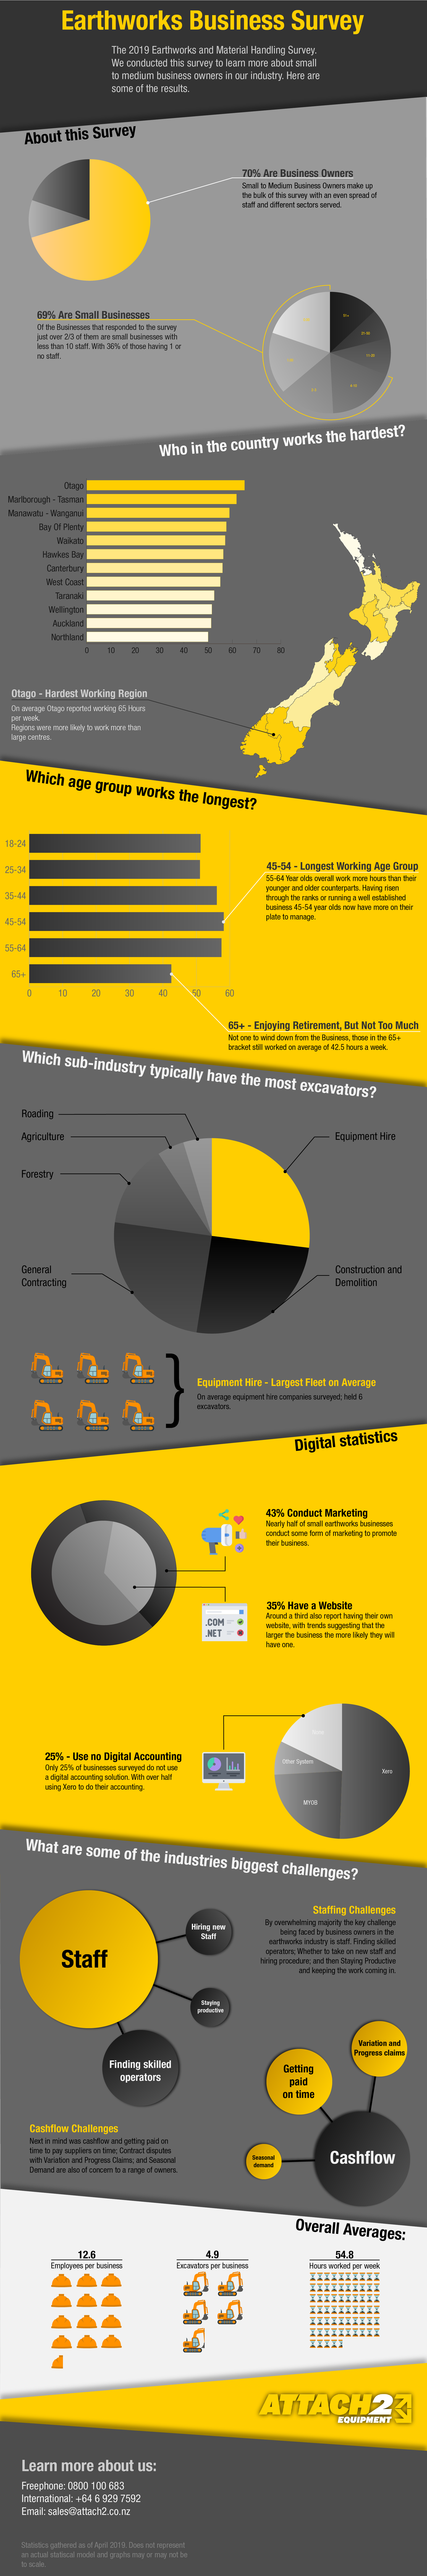 Earthworks and Material Handling Excavator Business Survey Infographic v4 Final